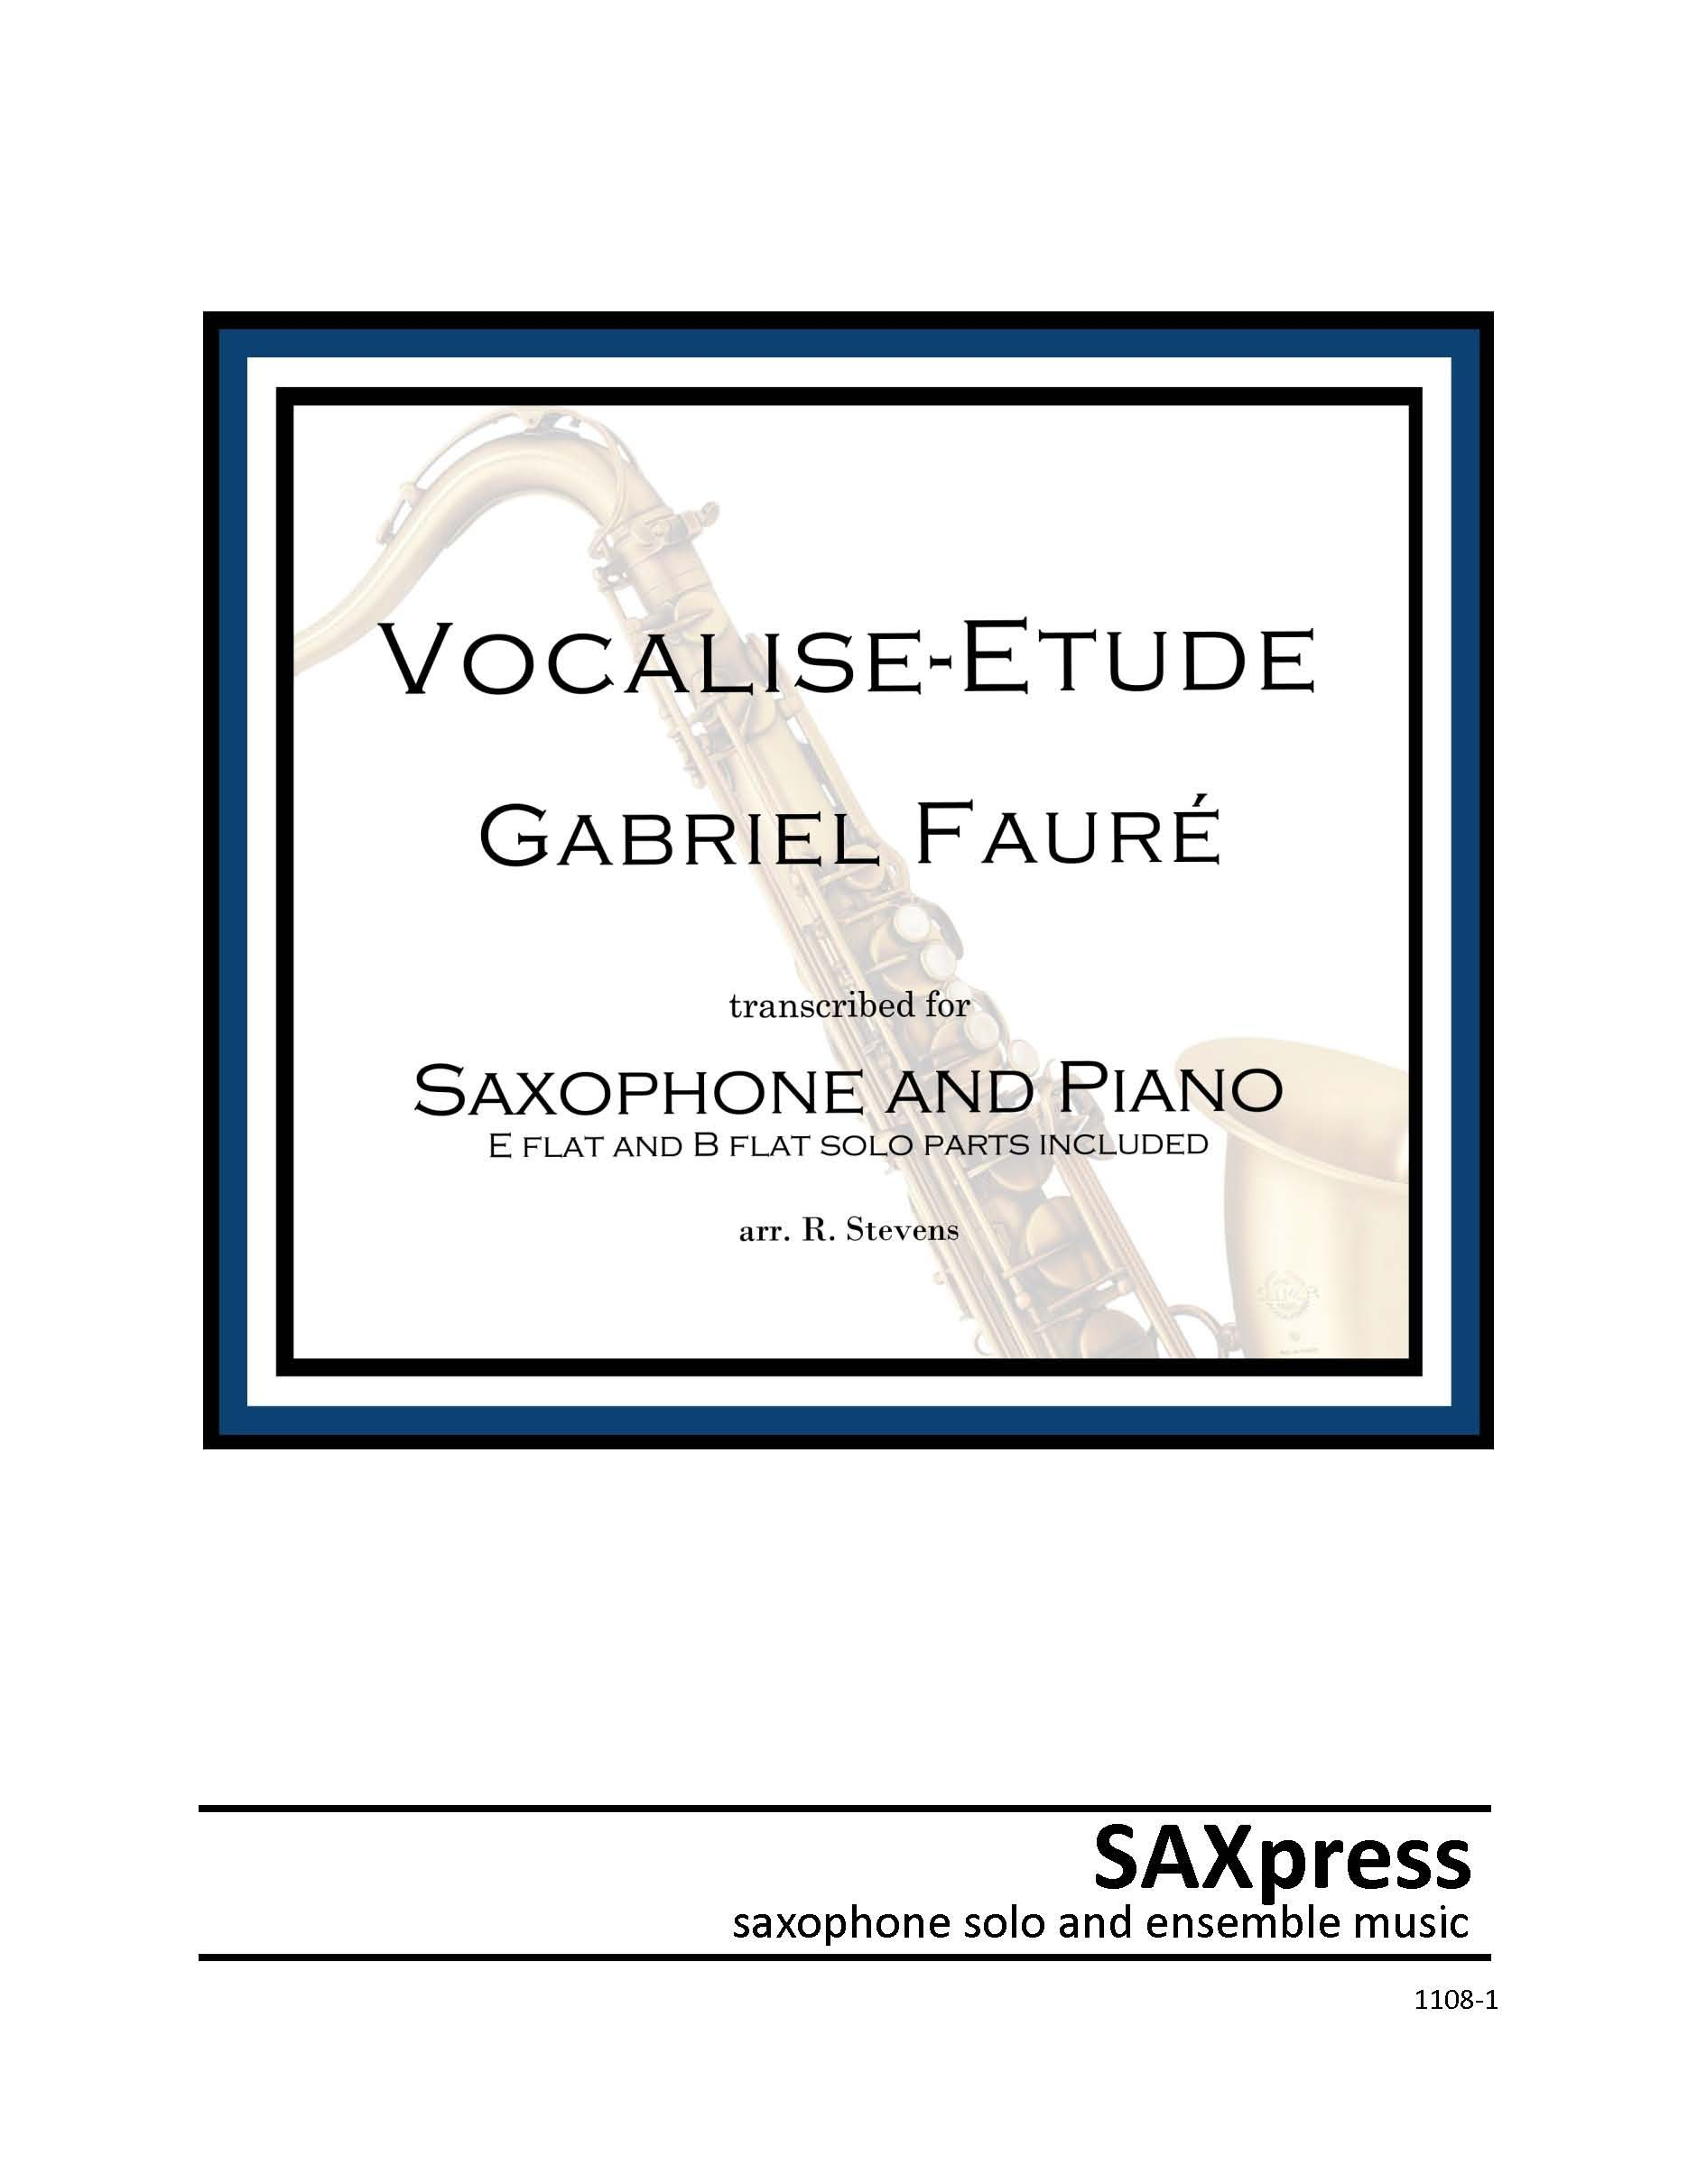 Vocalise-etude by Faure for saxophone solo